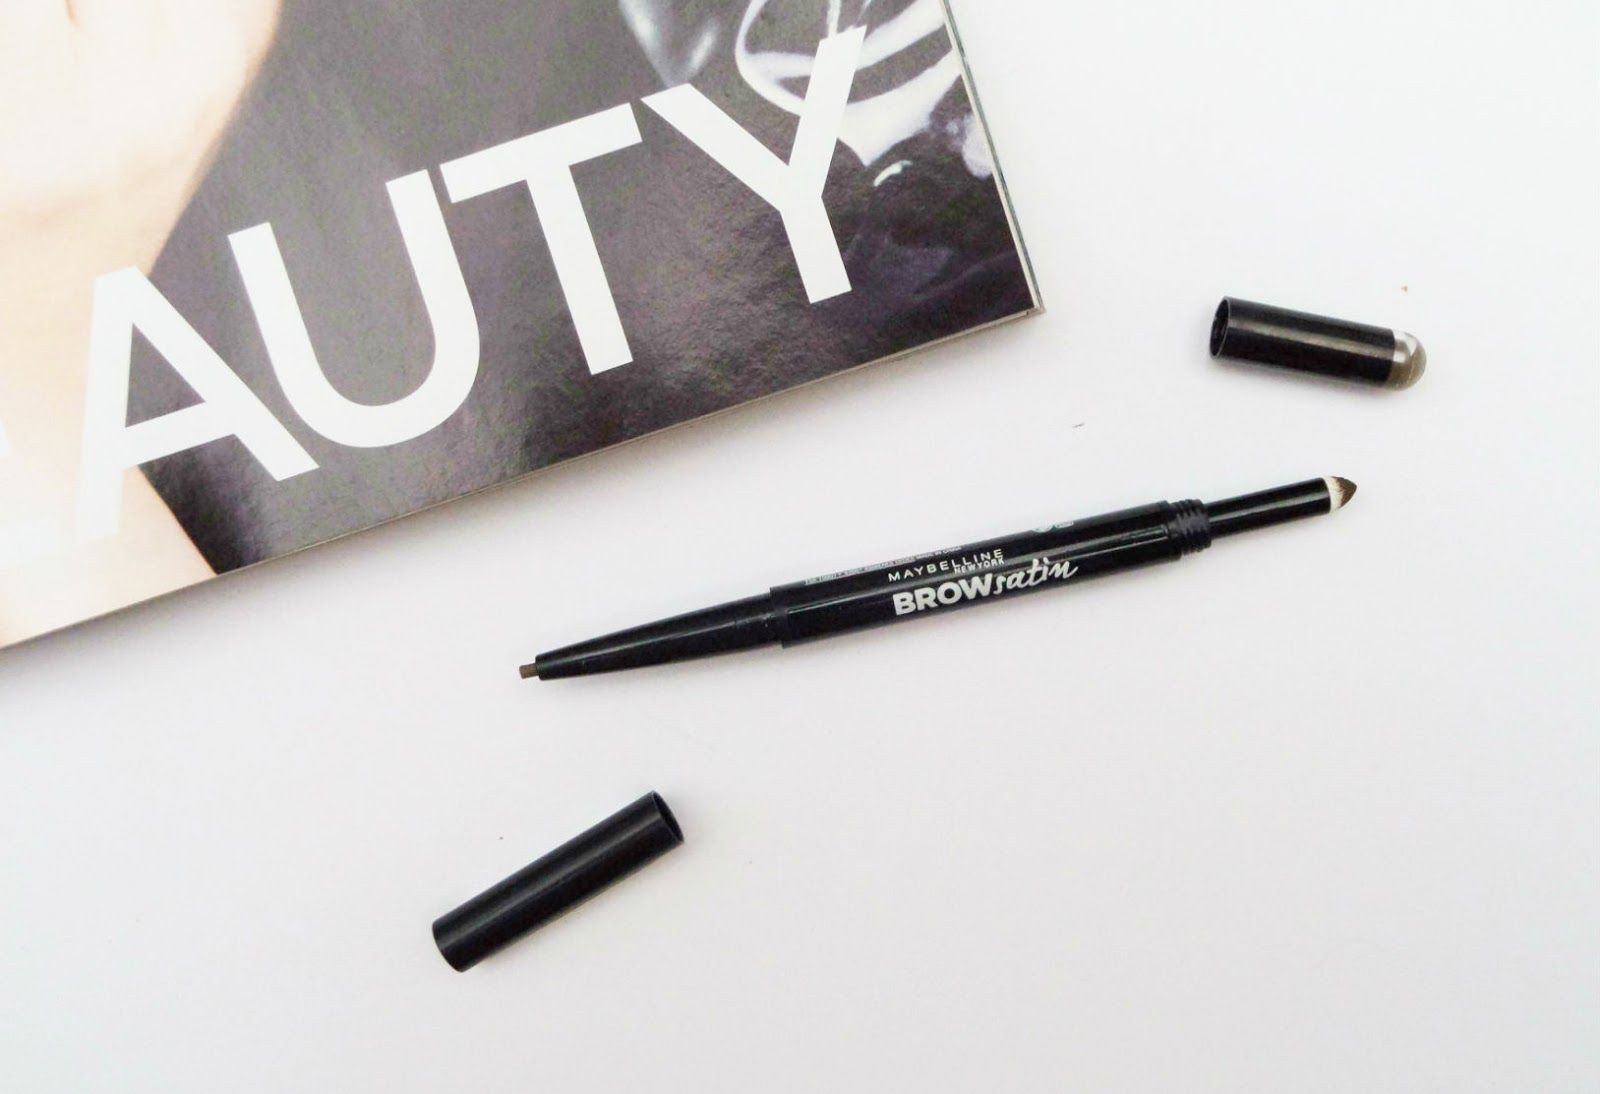 The Maybelline Brow Satin Eyebrow Pencil